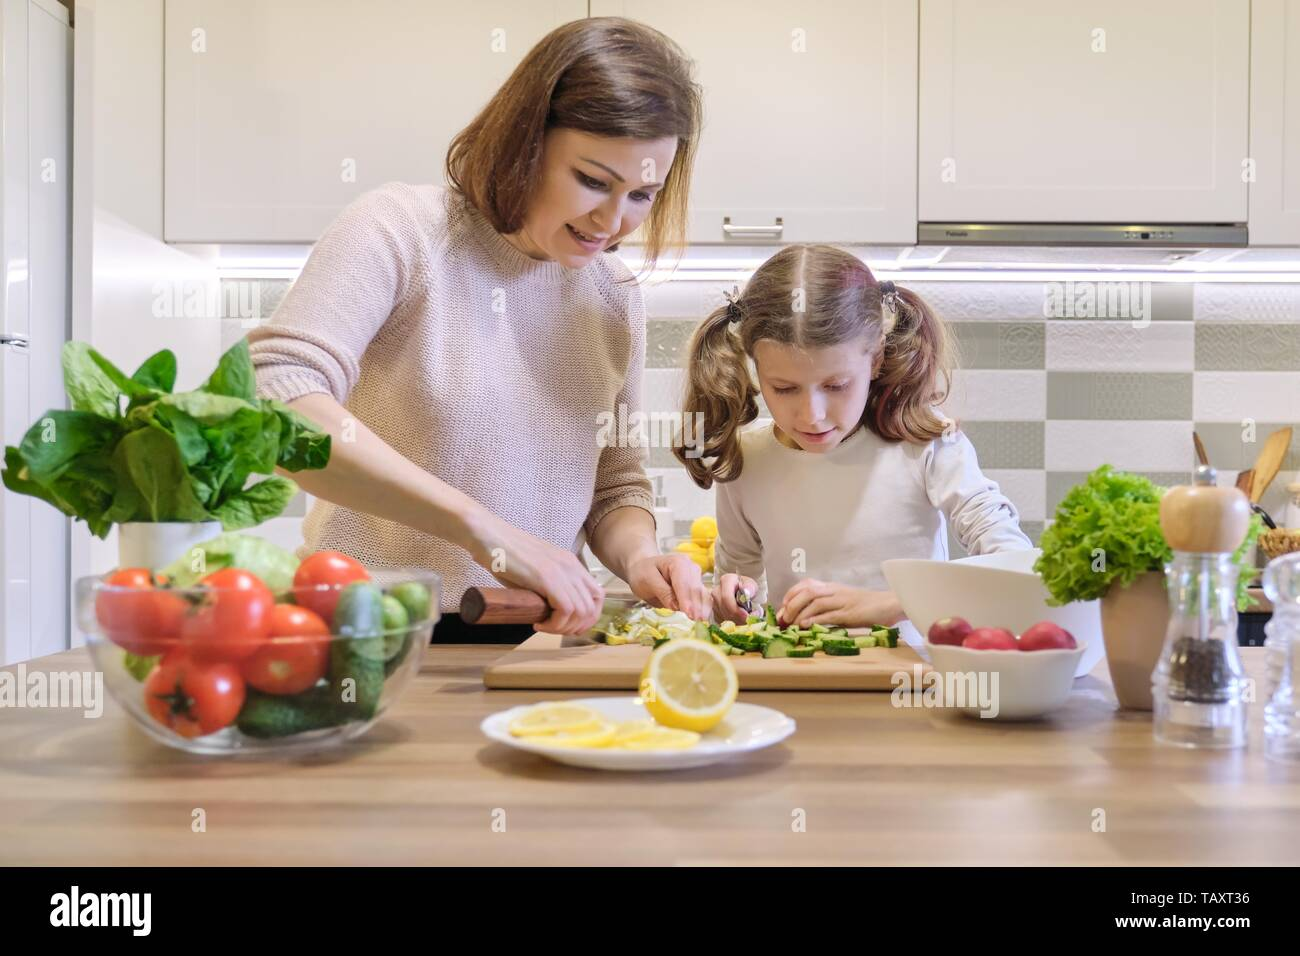 Mother and child cooking together at home in kitchen